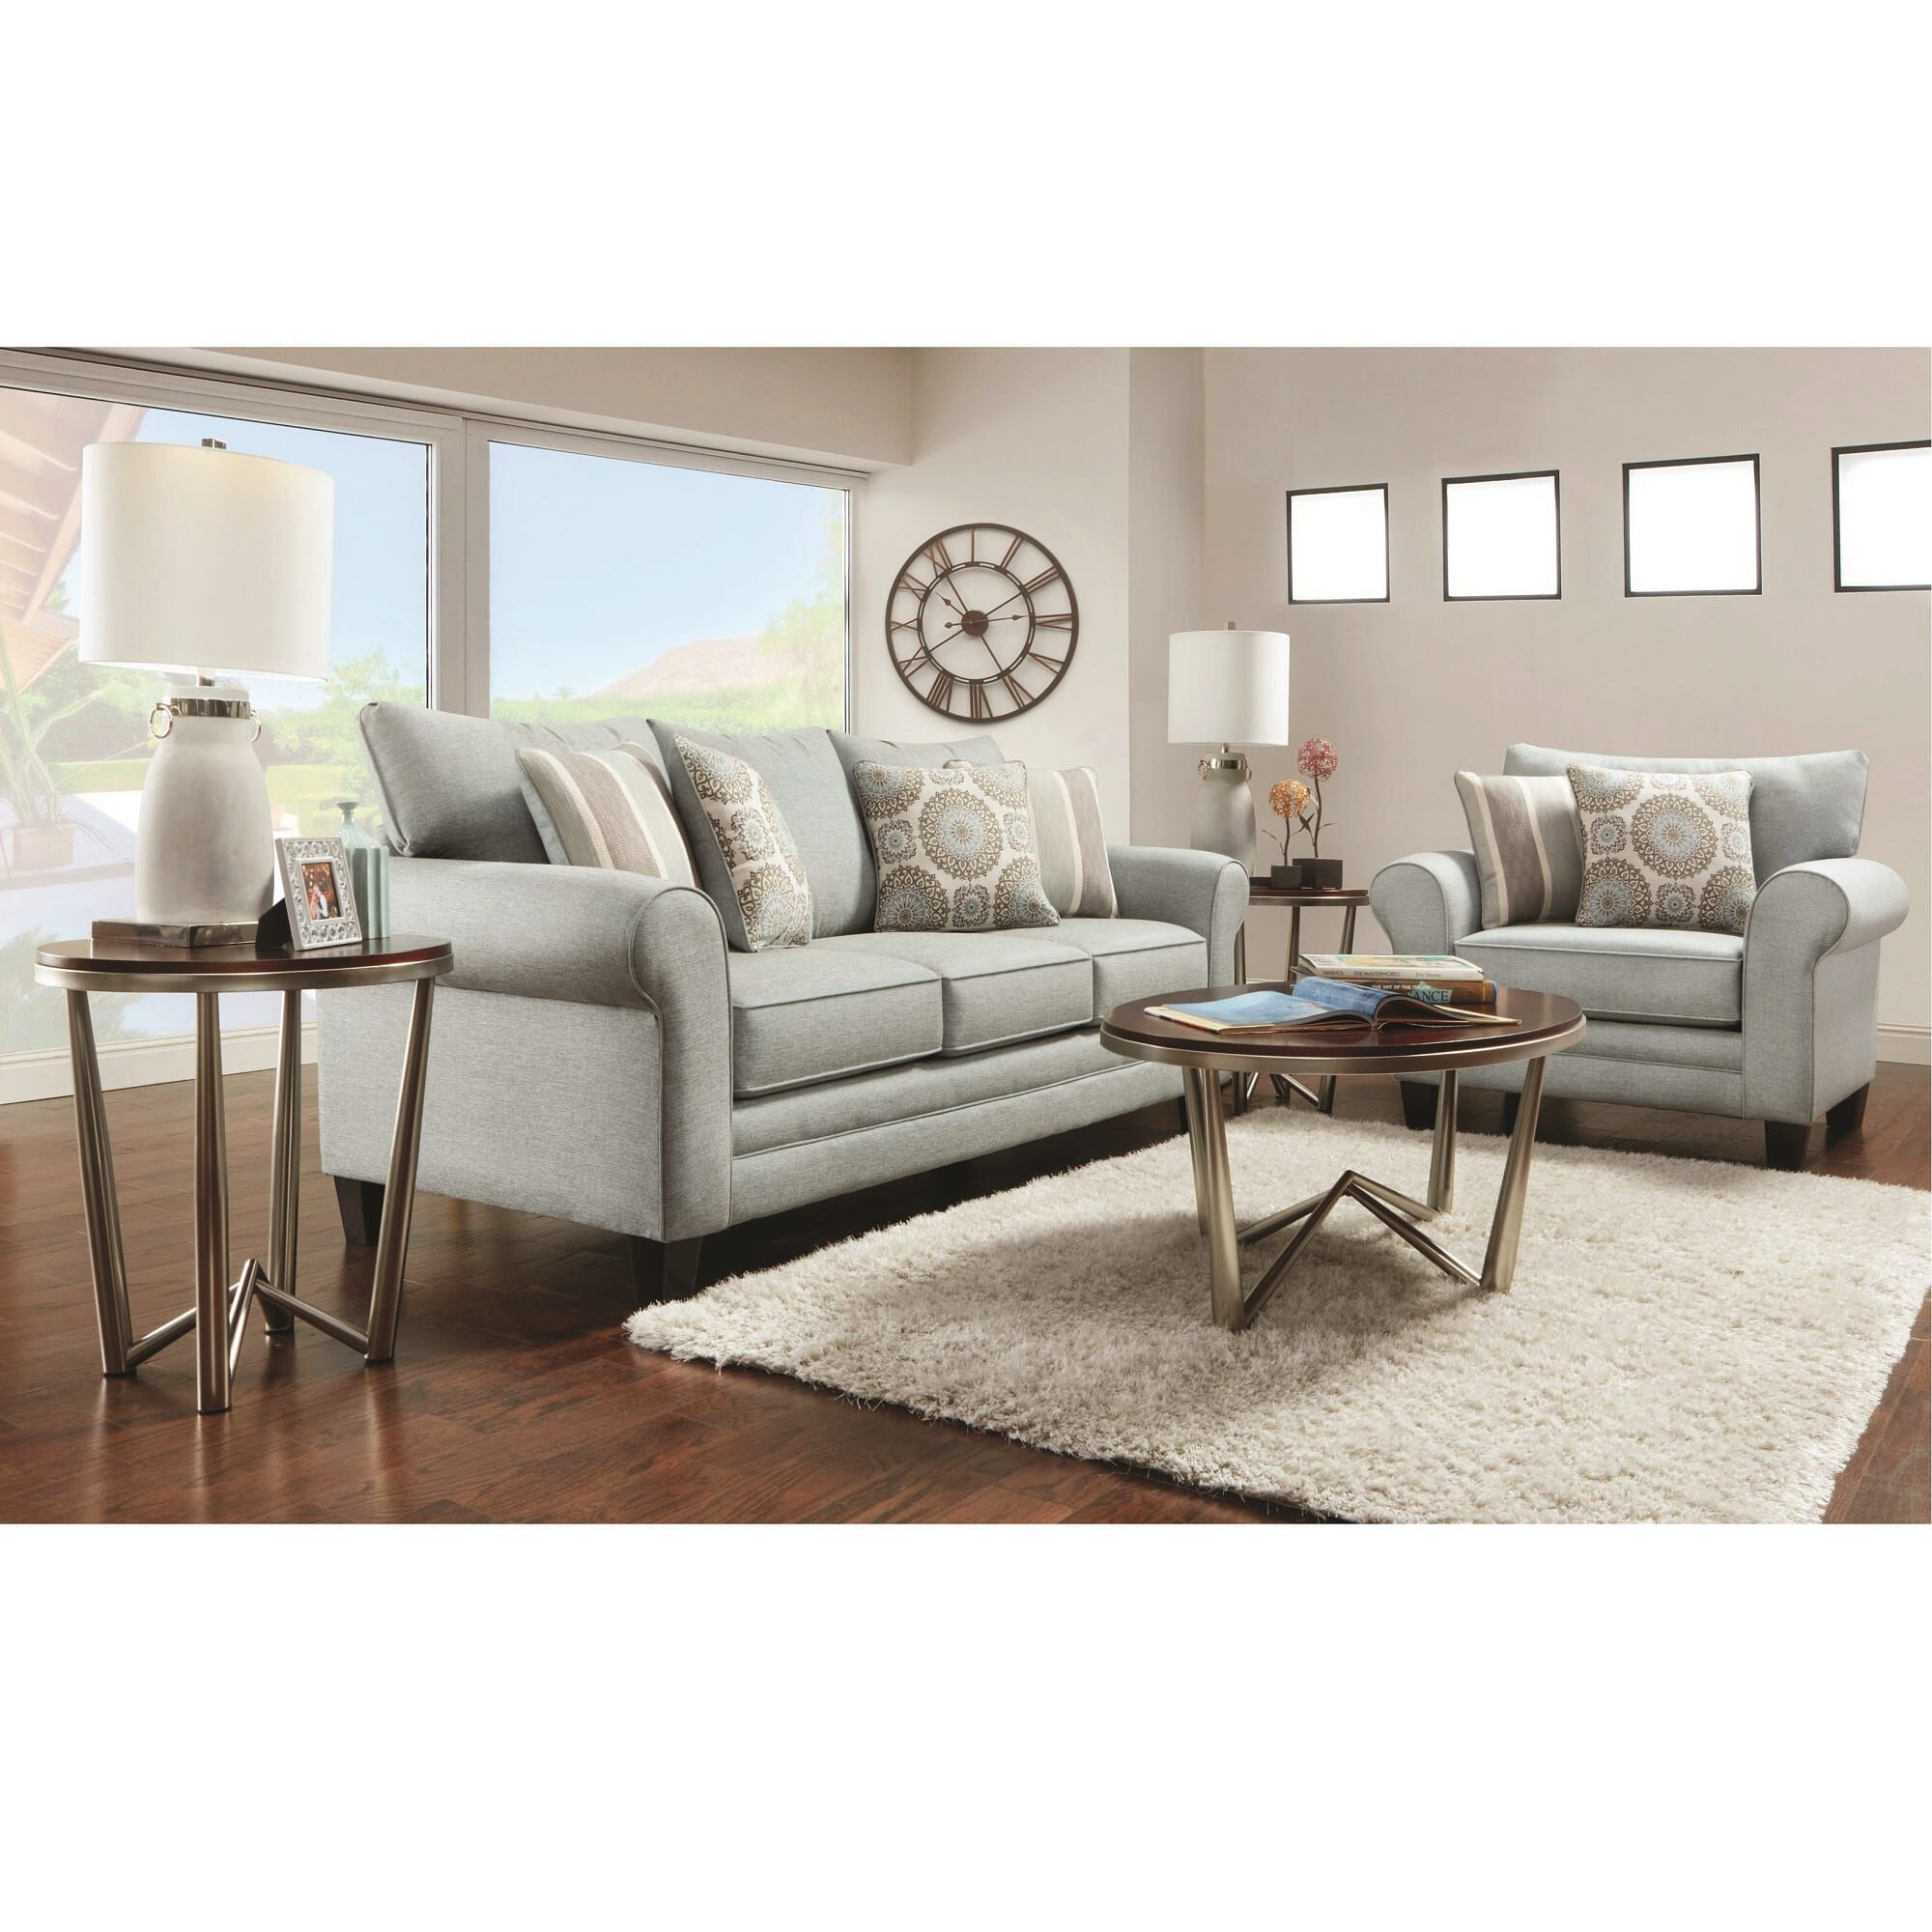 Attractive 2 Piece Lara Living Room Collection. Fusion Furniture